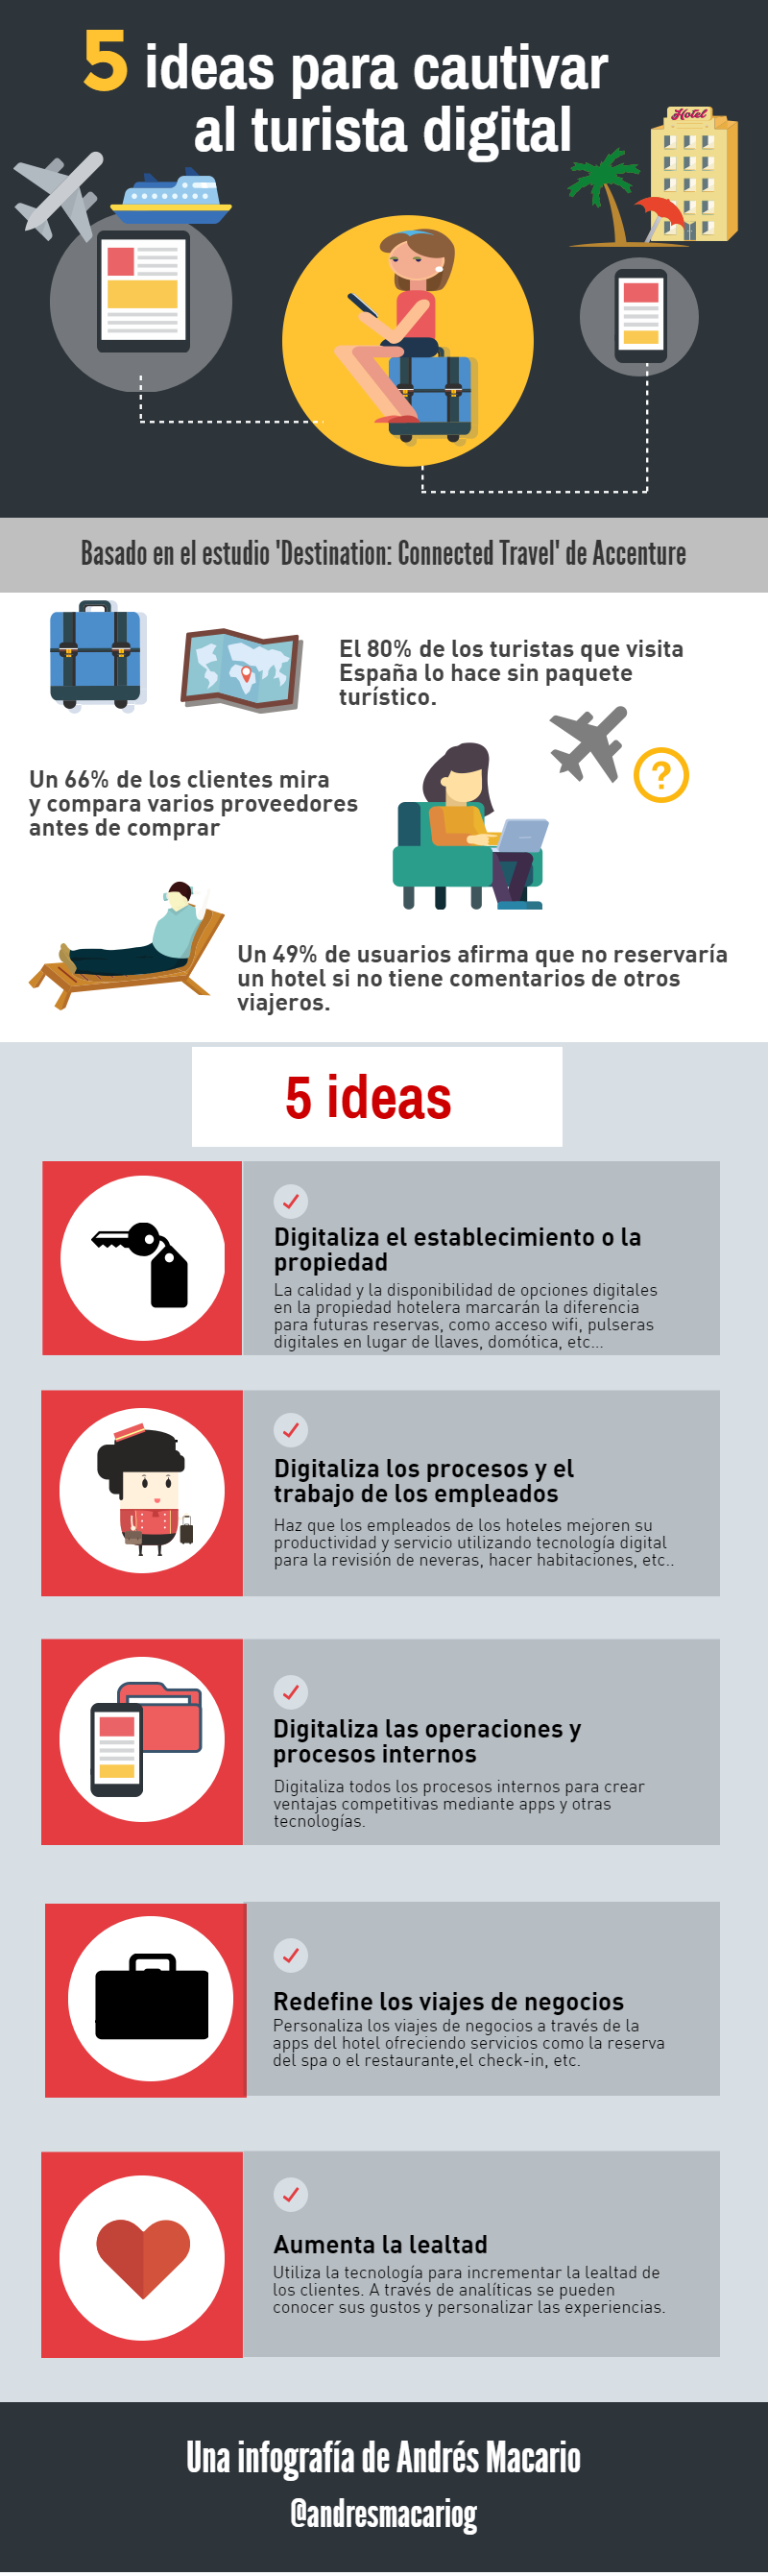 5 ideas para cautivar al Turista Digital